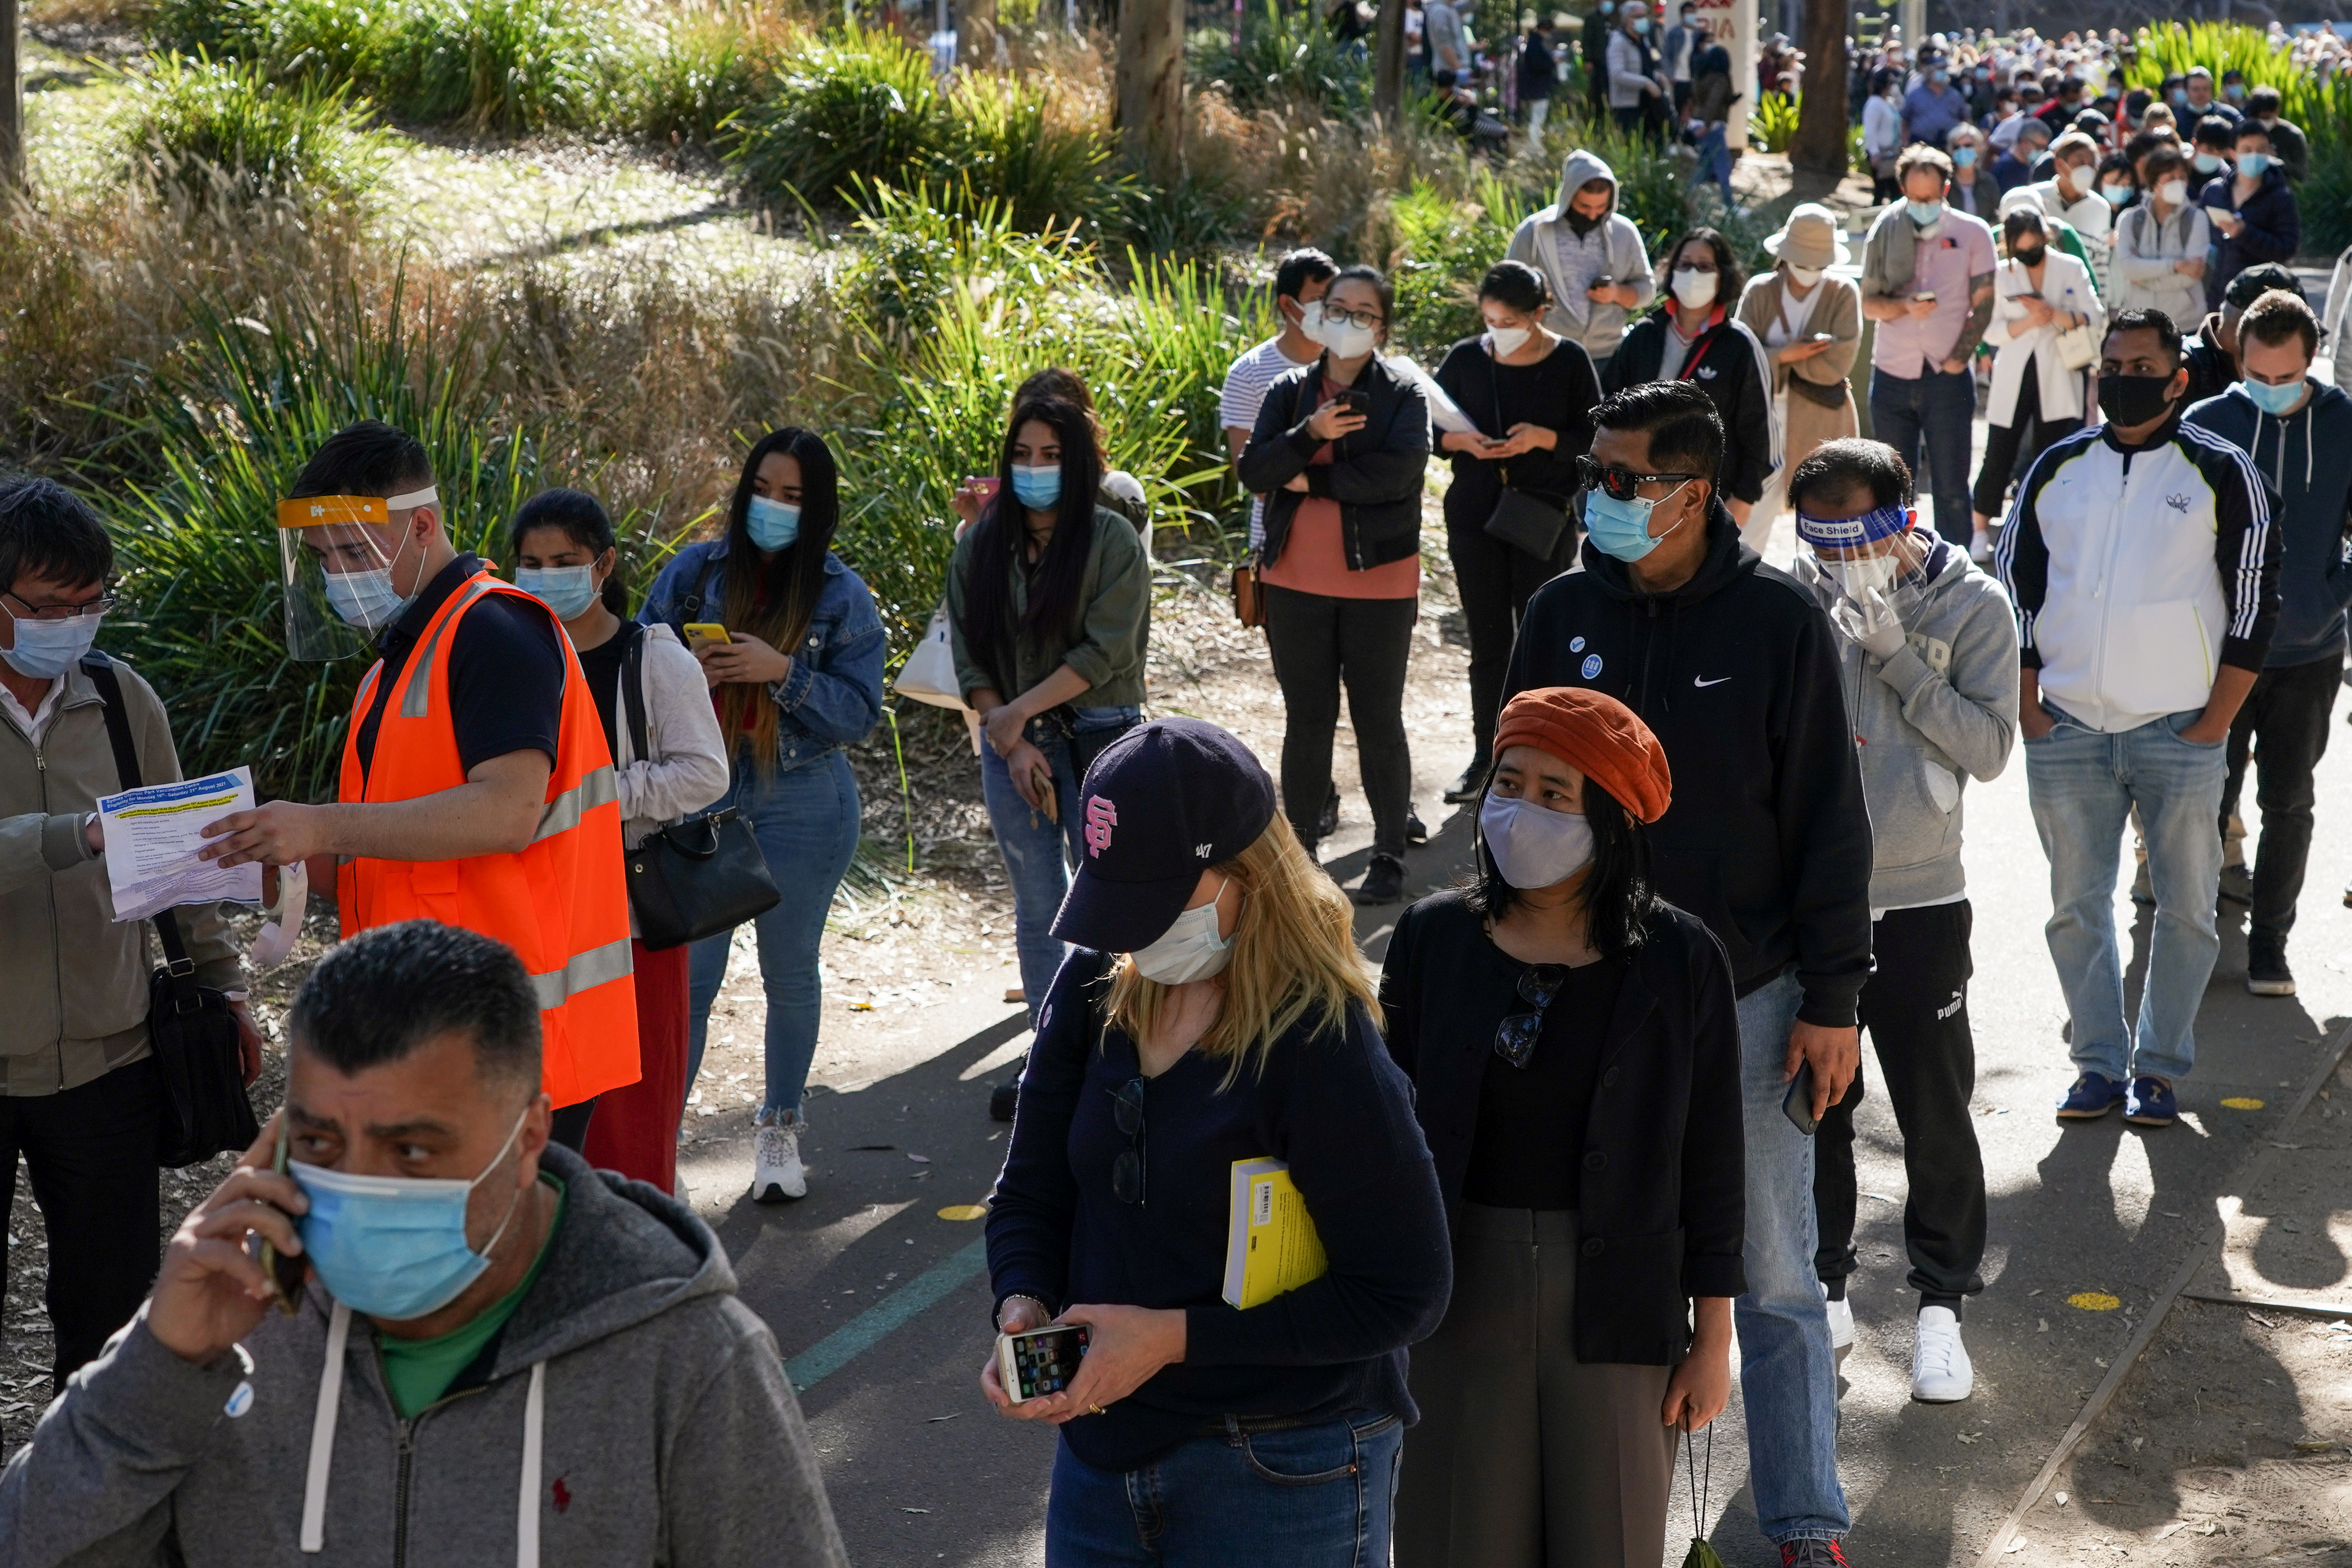 People wait in line outside a coronavirus disease (COVID-19) vaccination centre at Sydney Olympic Park during a lockdown to curb the spread of an outbreak in Sydney, Australia, August 16, 2021.  REUTERS/Loren Elliott